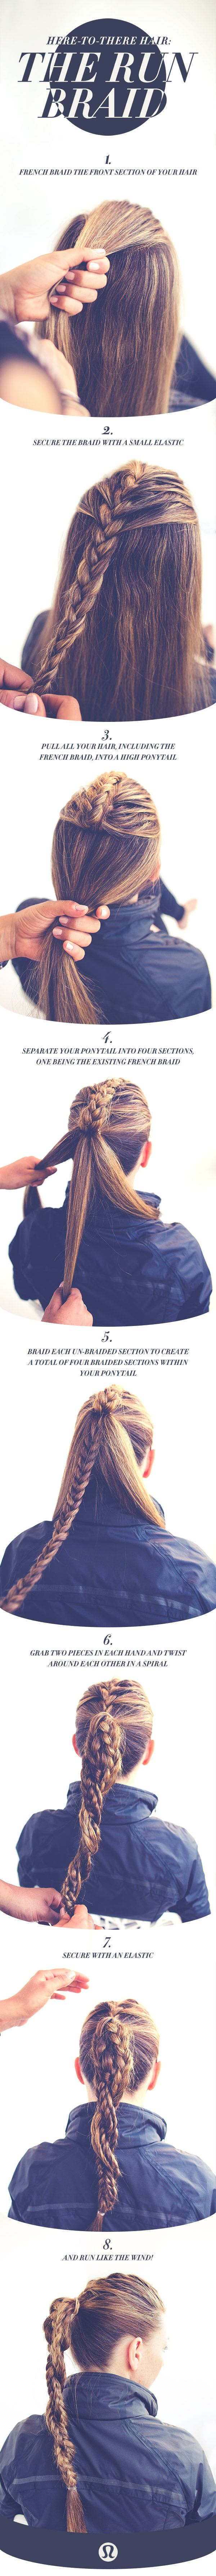 Here-to-there hair: Watch and learn how to create the perfect run braid... POST YOUR FREE LISTING TODAY! Hair News Network. All Hair. All The Time. http://www.HairNewsNetwork.com: Hairstyles, Running Hairstyle, Hairdos, Here To There Hair, Hair Styles, Ru